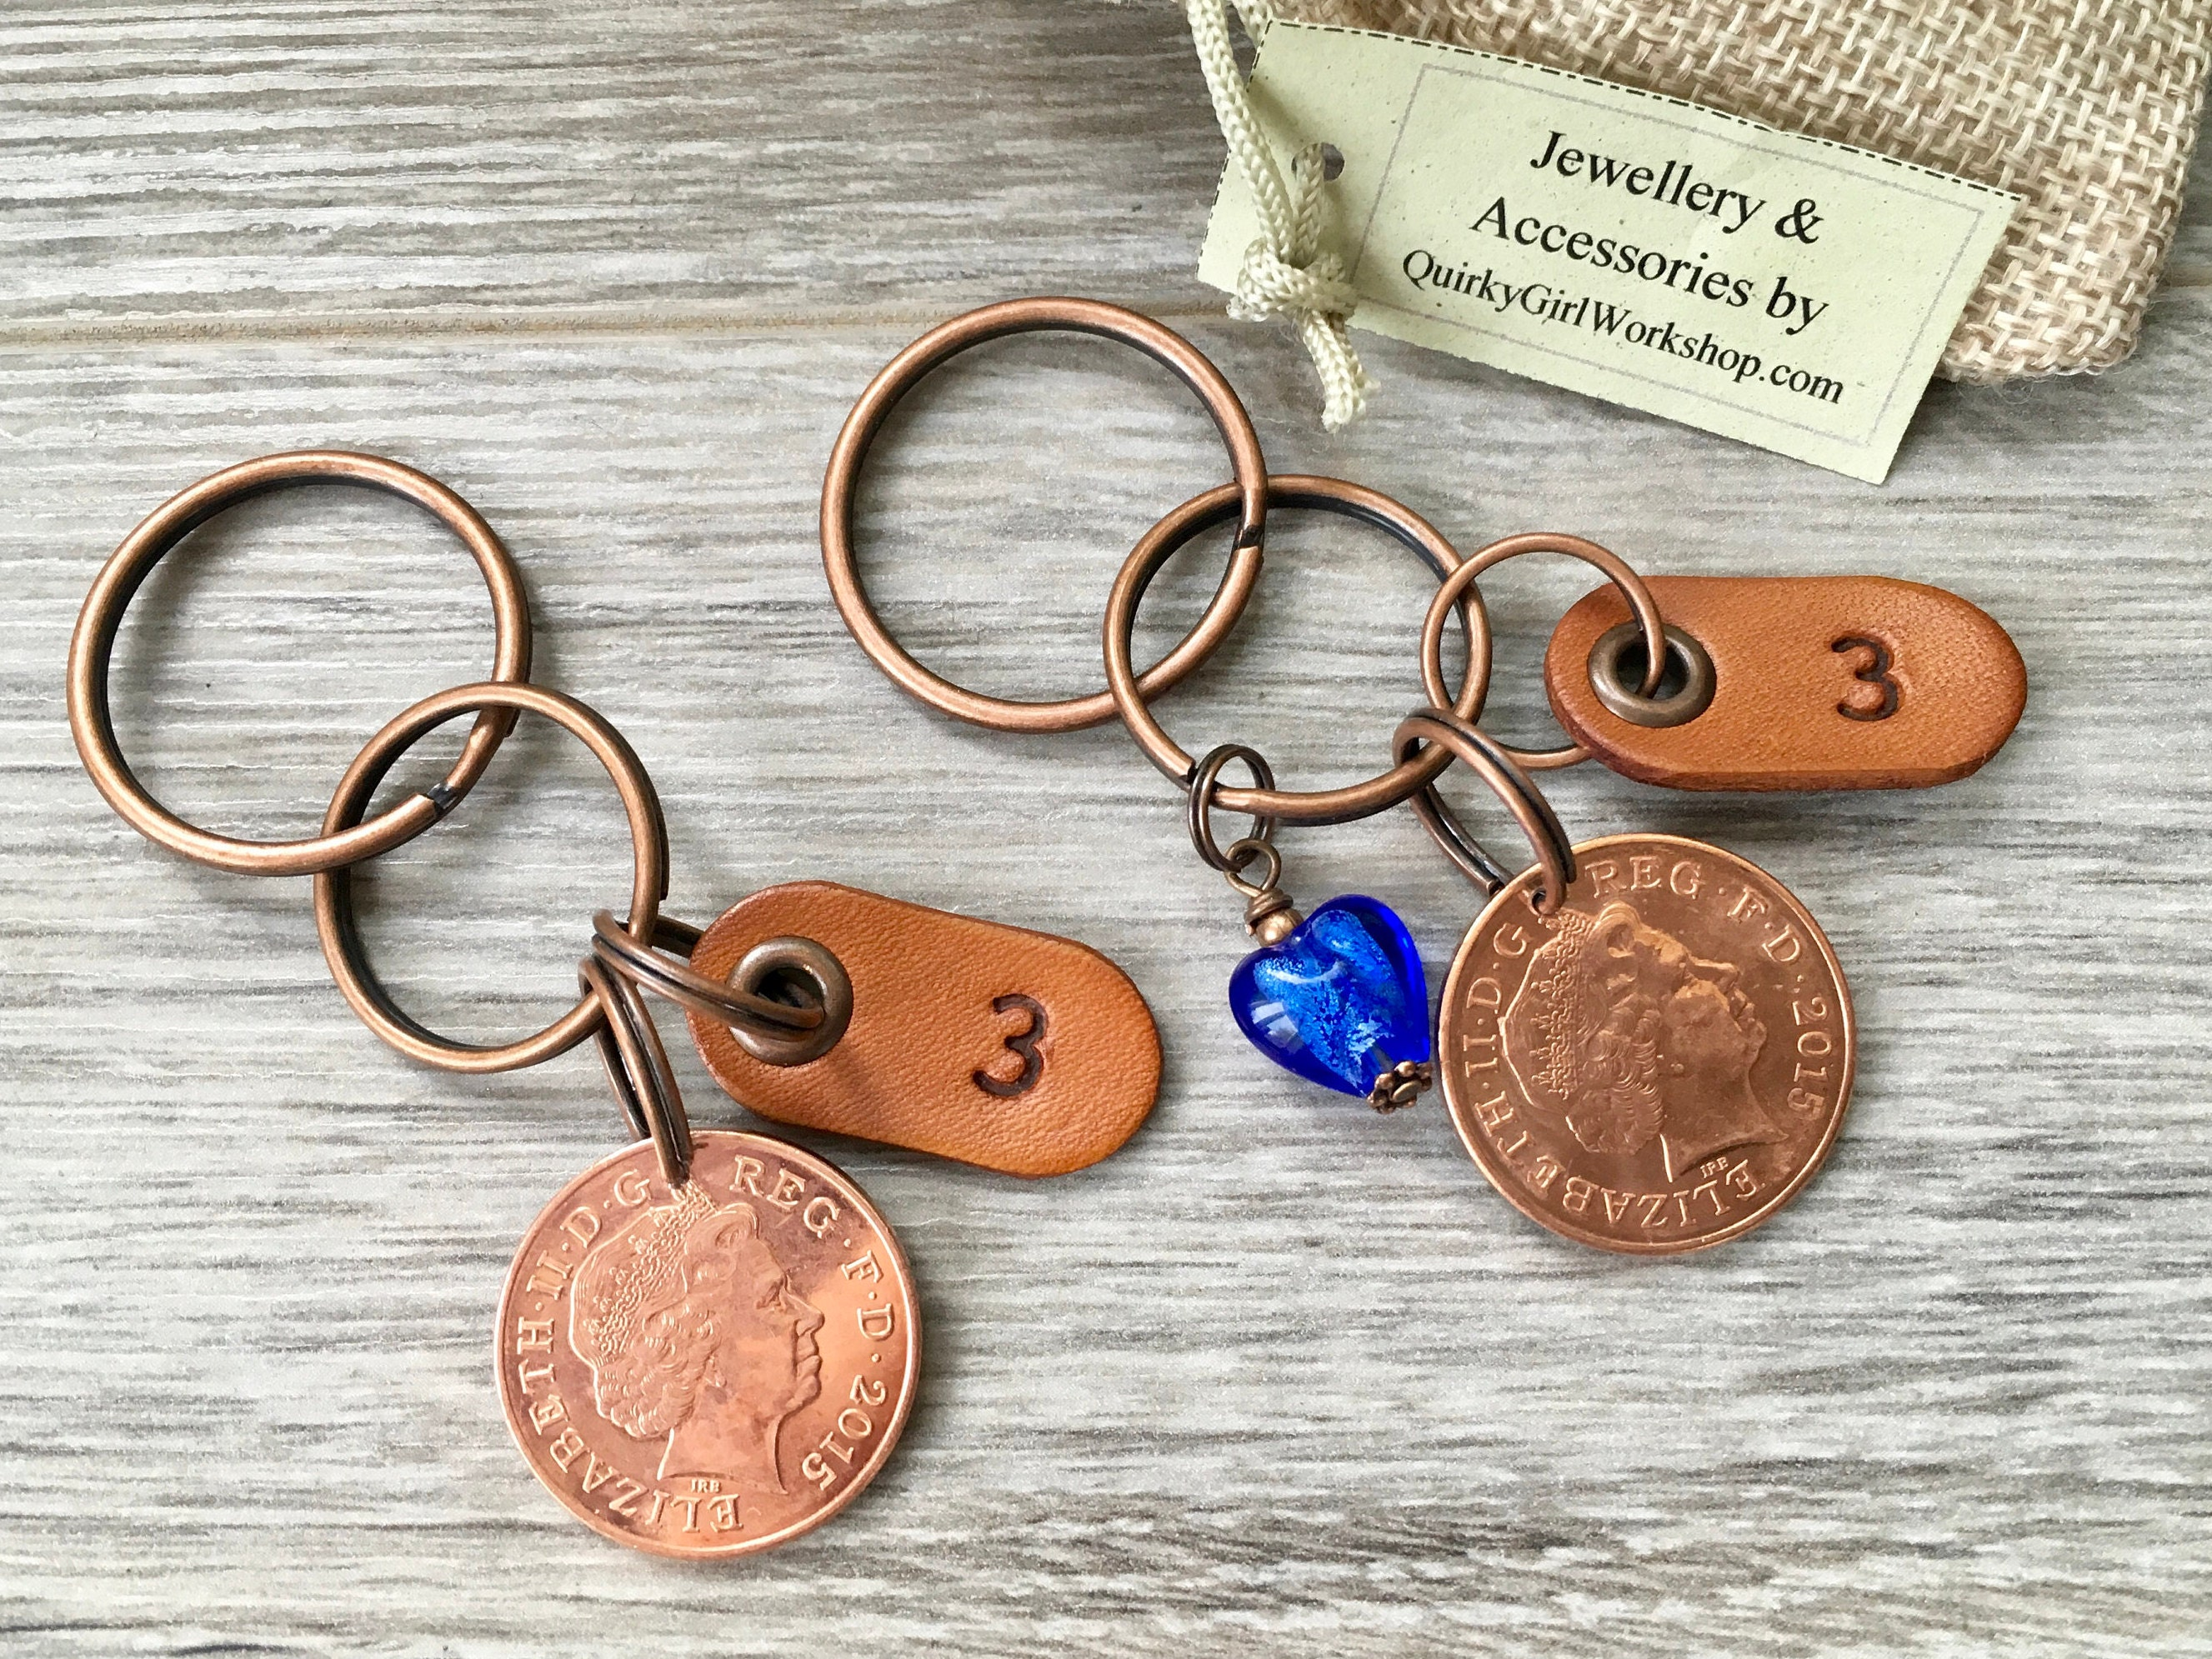 3rd anniversary gift two 2015 coin keyrings 2 leather keychains